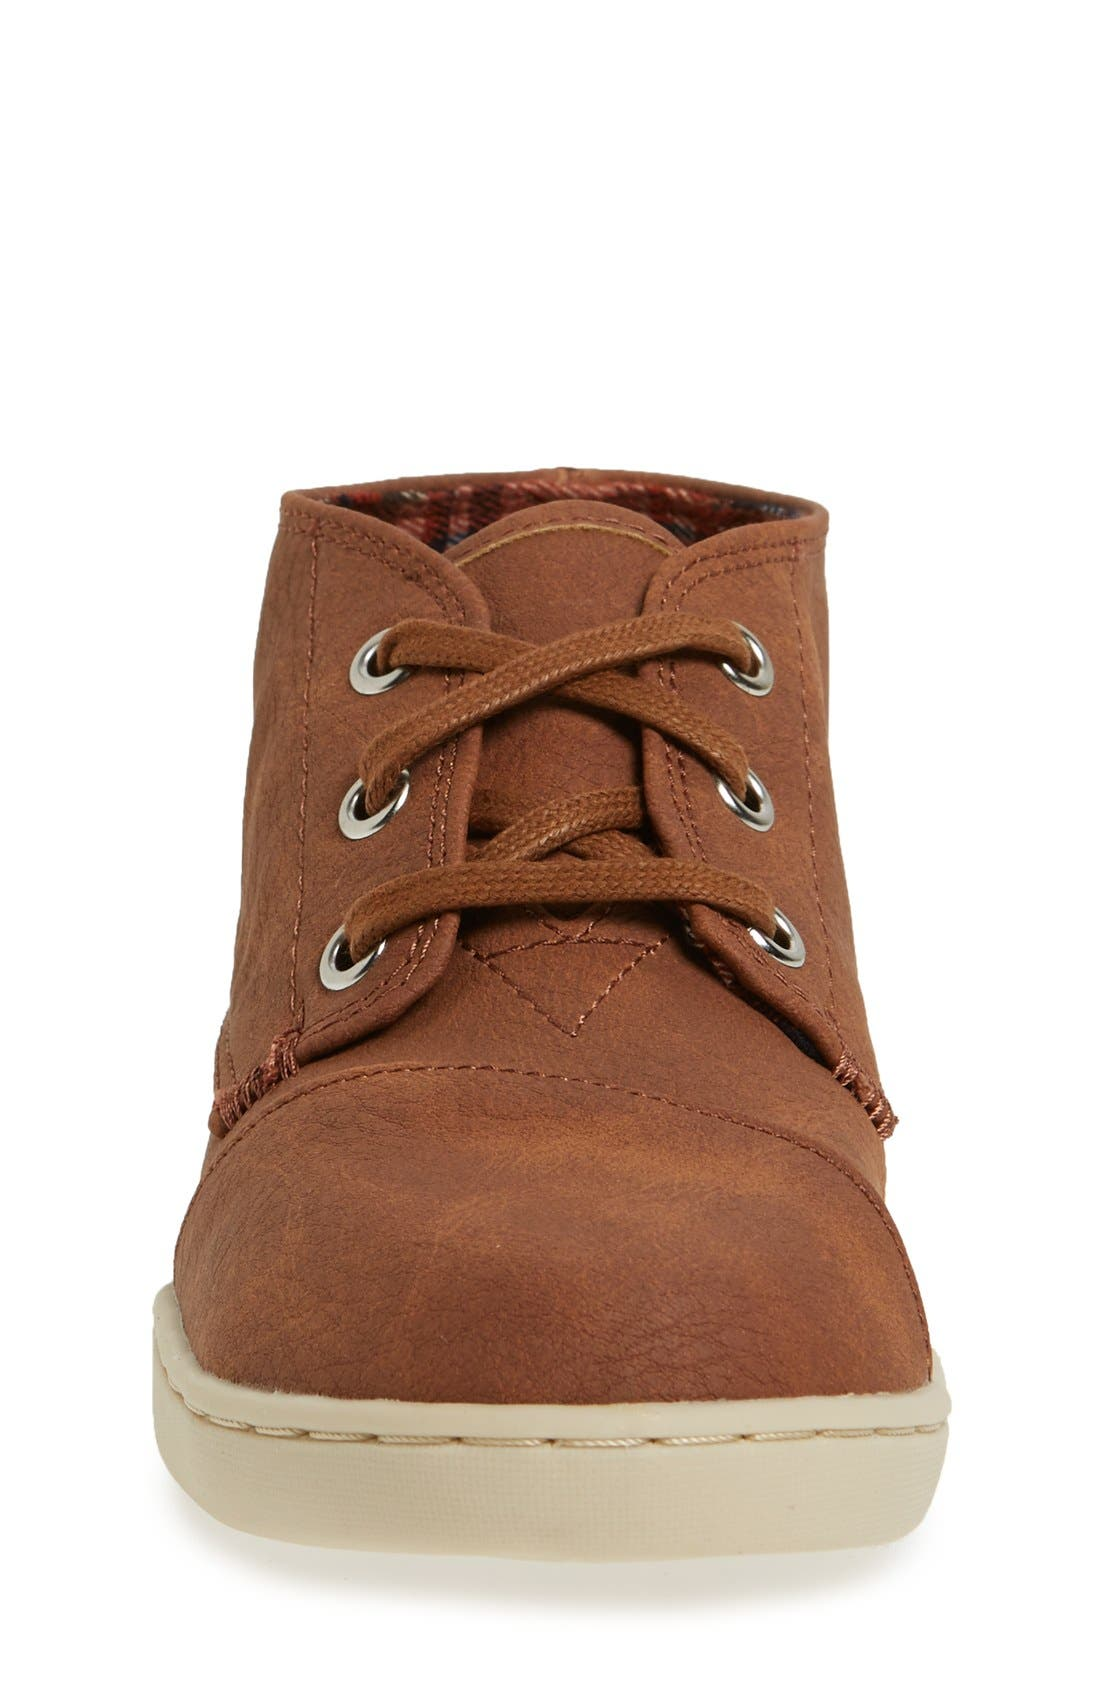 'Paseo - Youth' Mid Boot,                             Alternate thumbnail 3, color,                             Brown Faux Leather